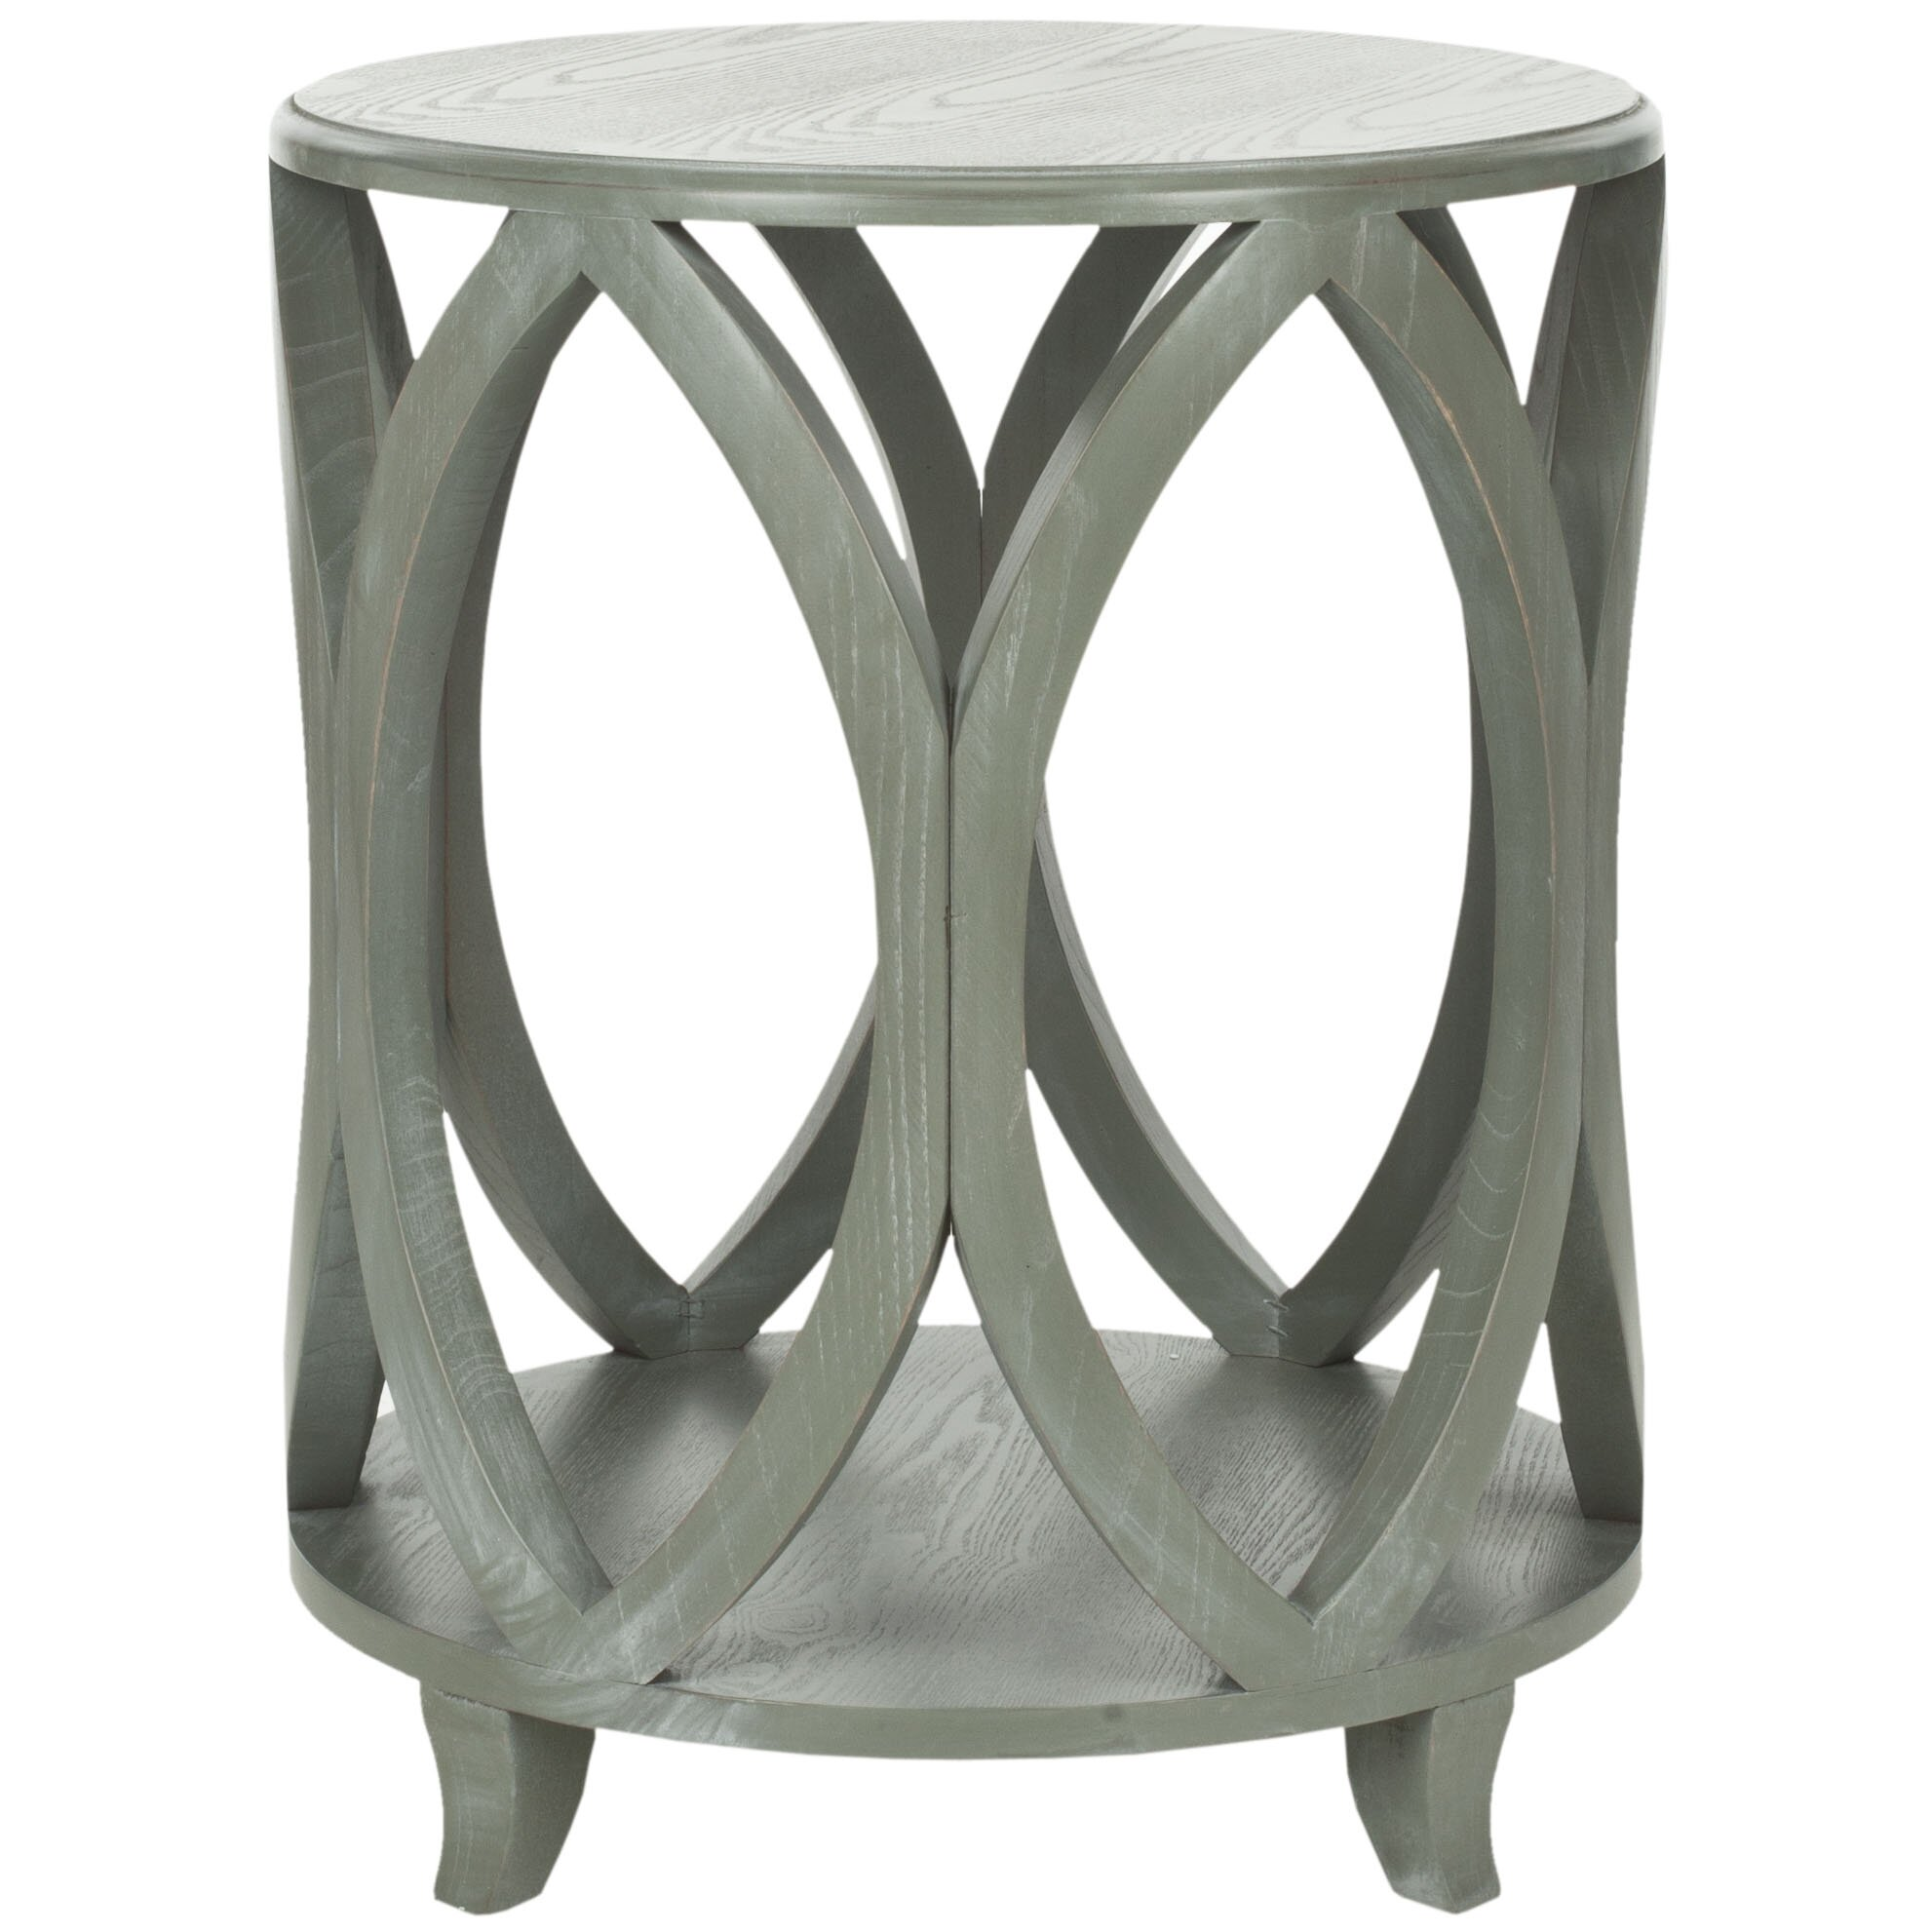 Safavieh emma end table reviews wayfair uk for 560 salon grand junction